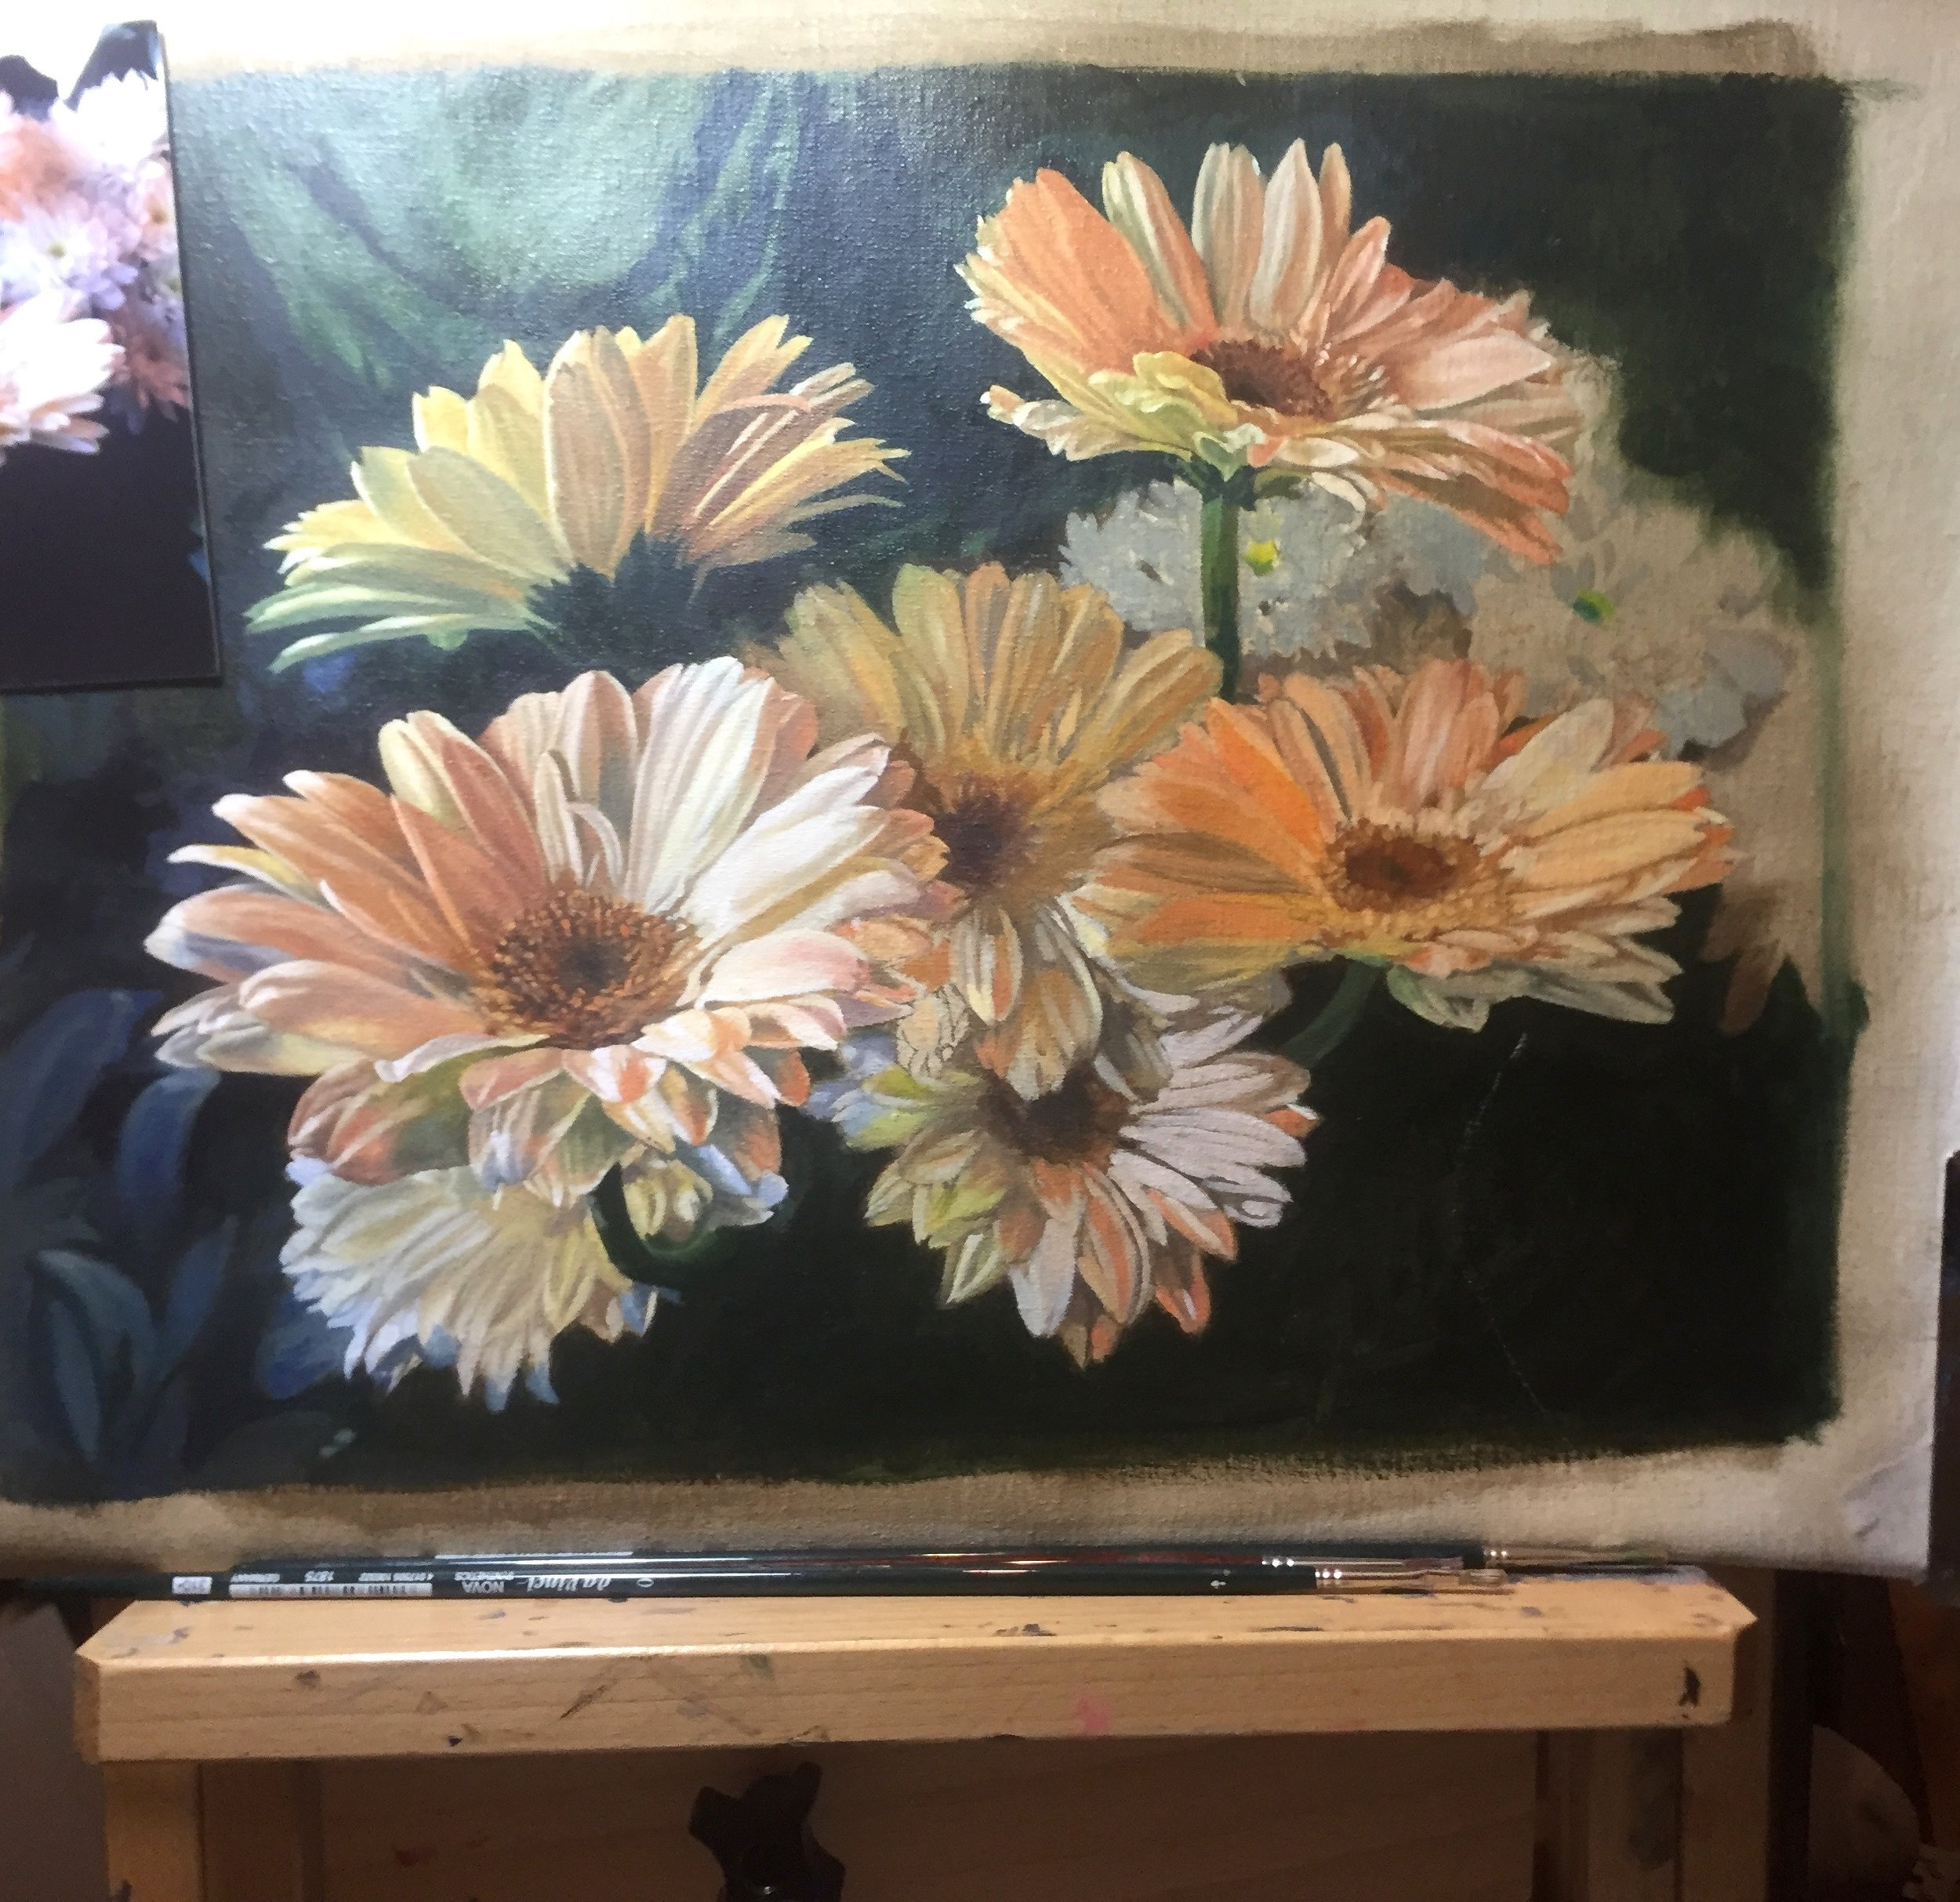 Daisies on the left show the second layer